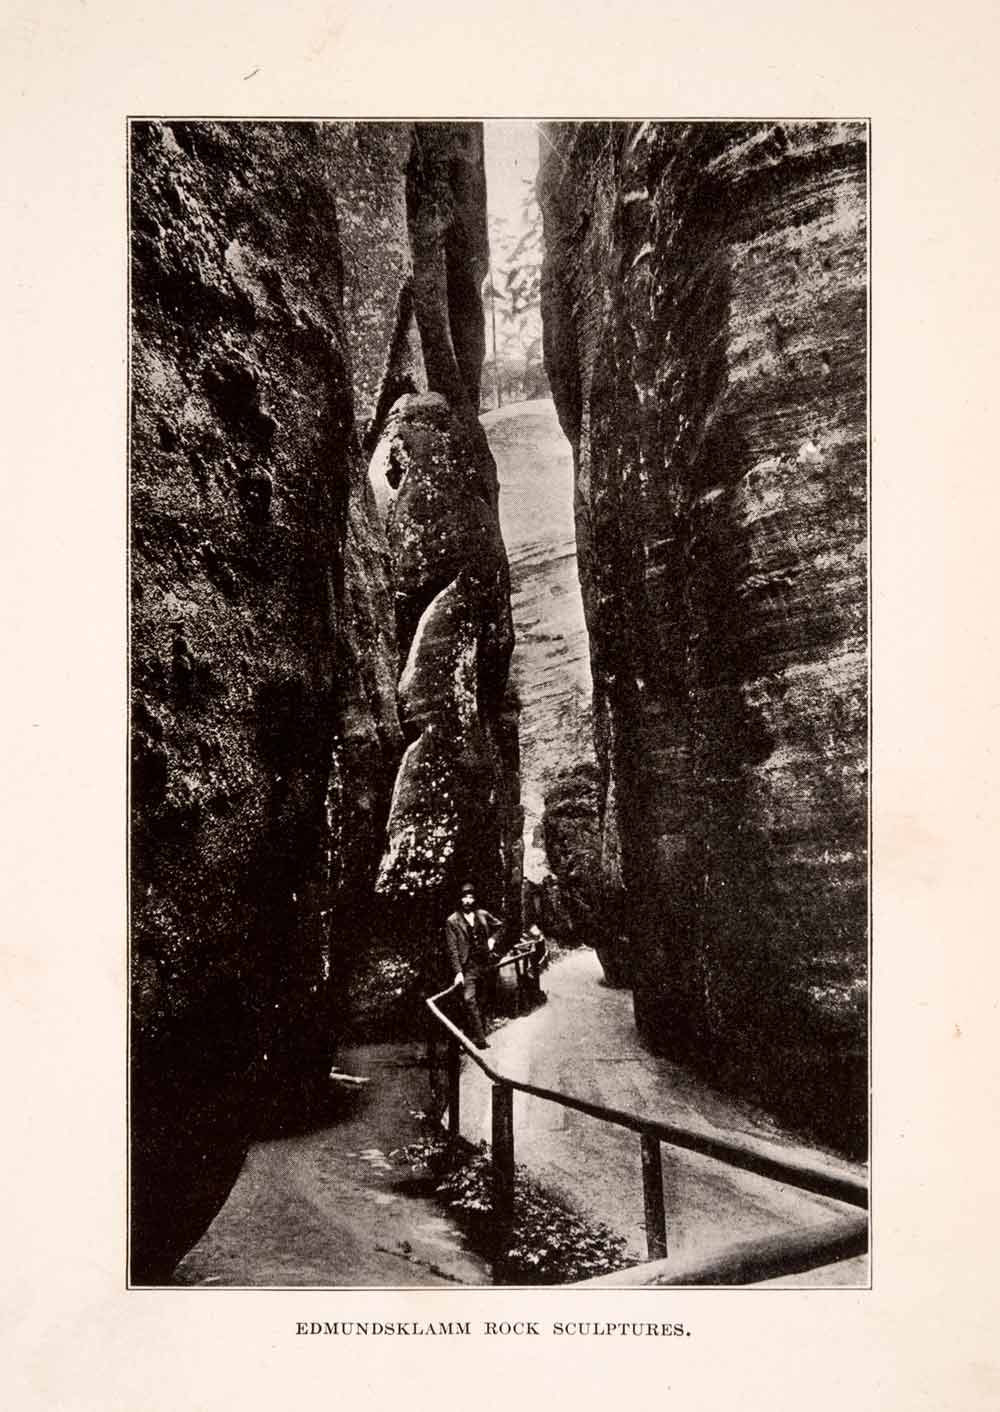 1929 Print Edmundsklamm Rock Formations Geology Czech Republic Natural XGDA5